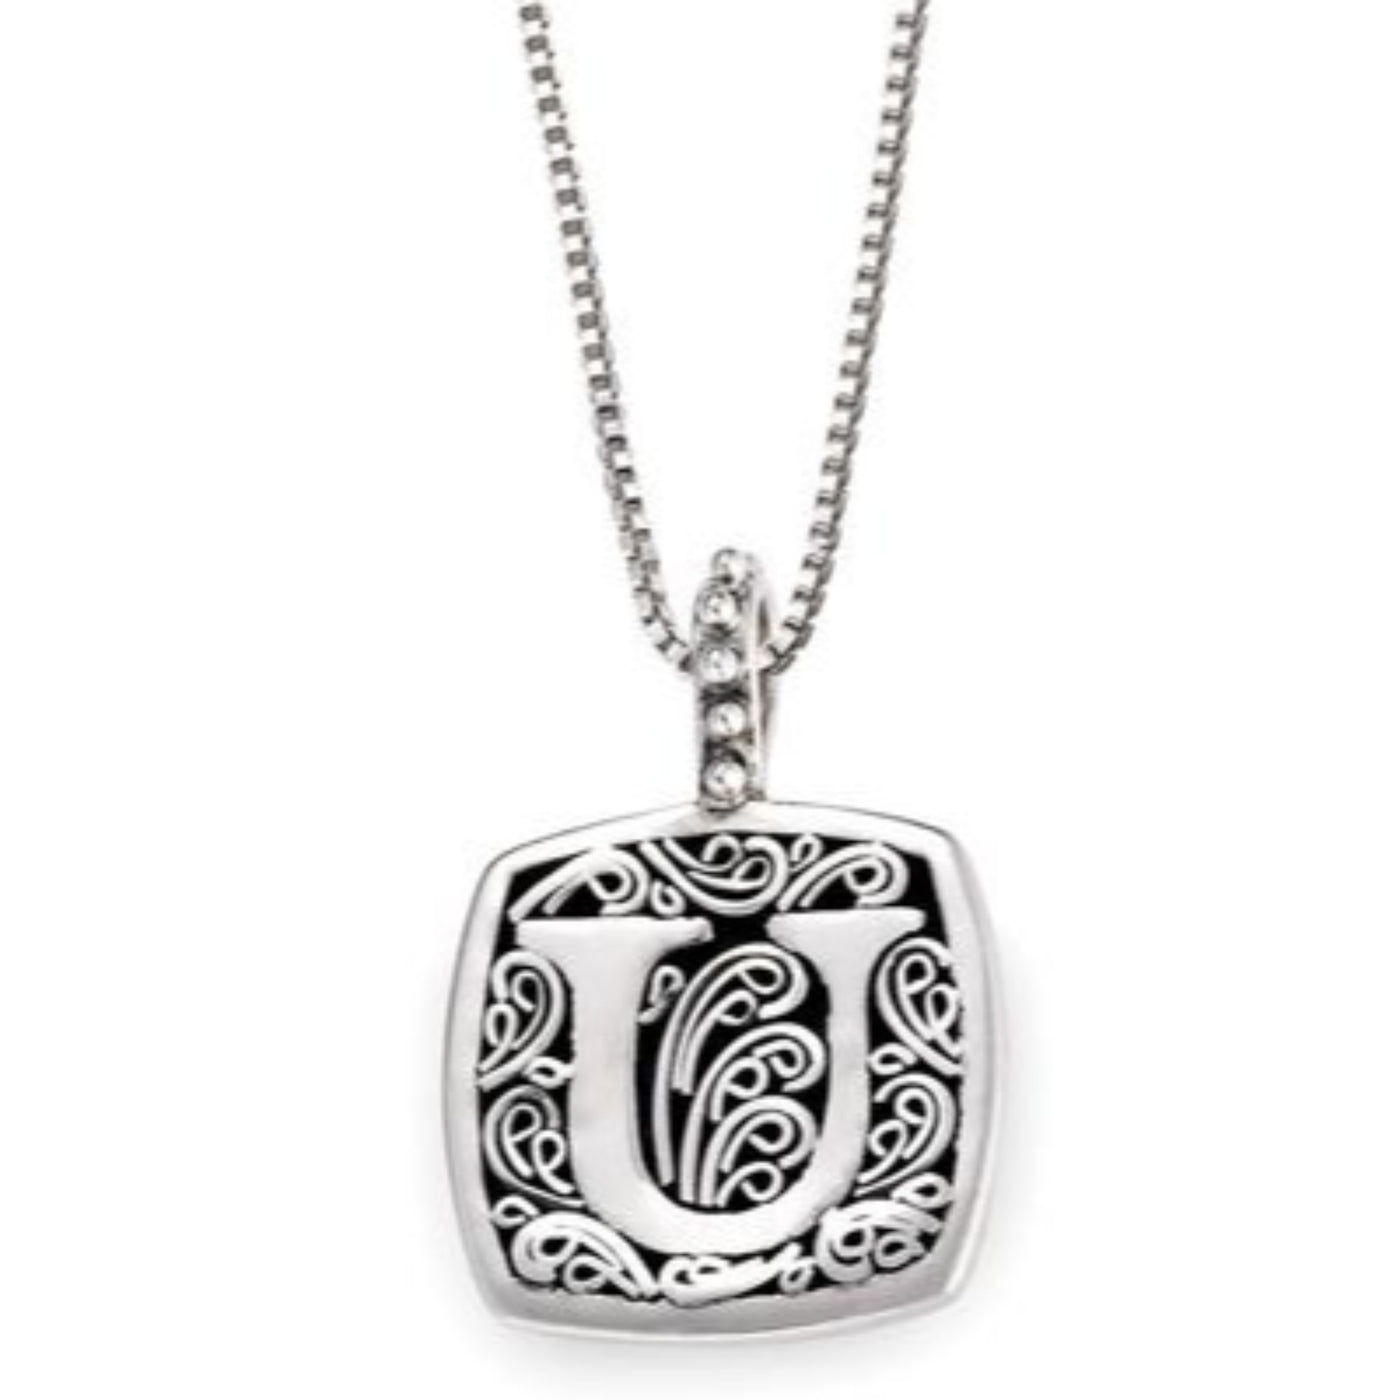 LB 59900XU U INITIAL NECKLACE